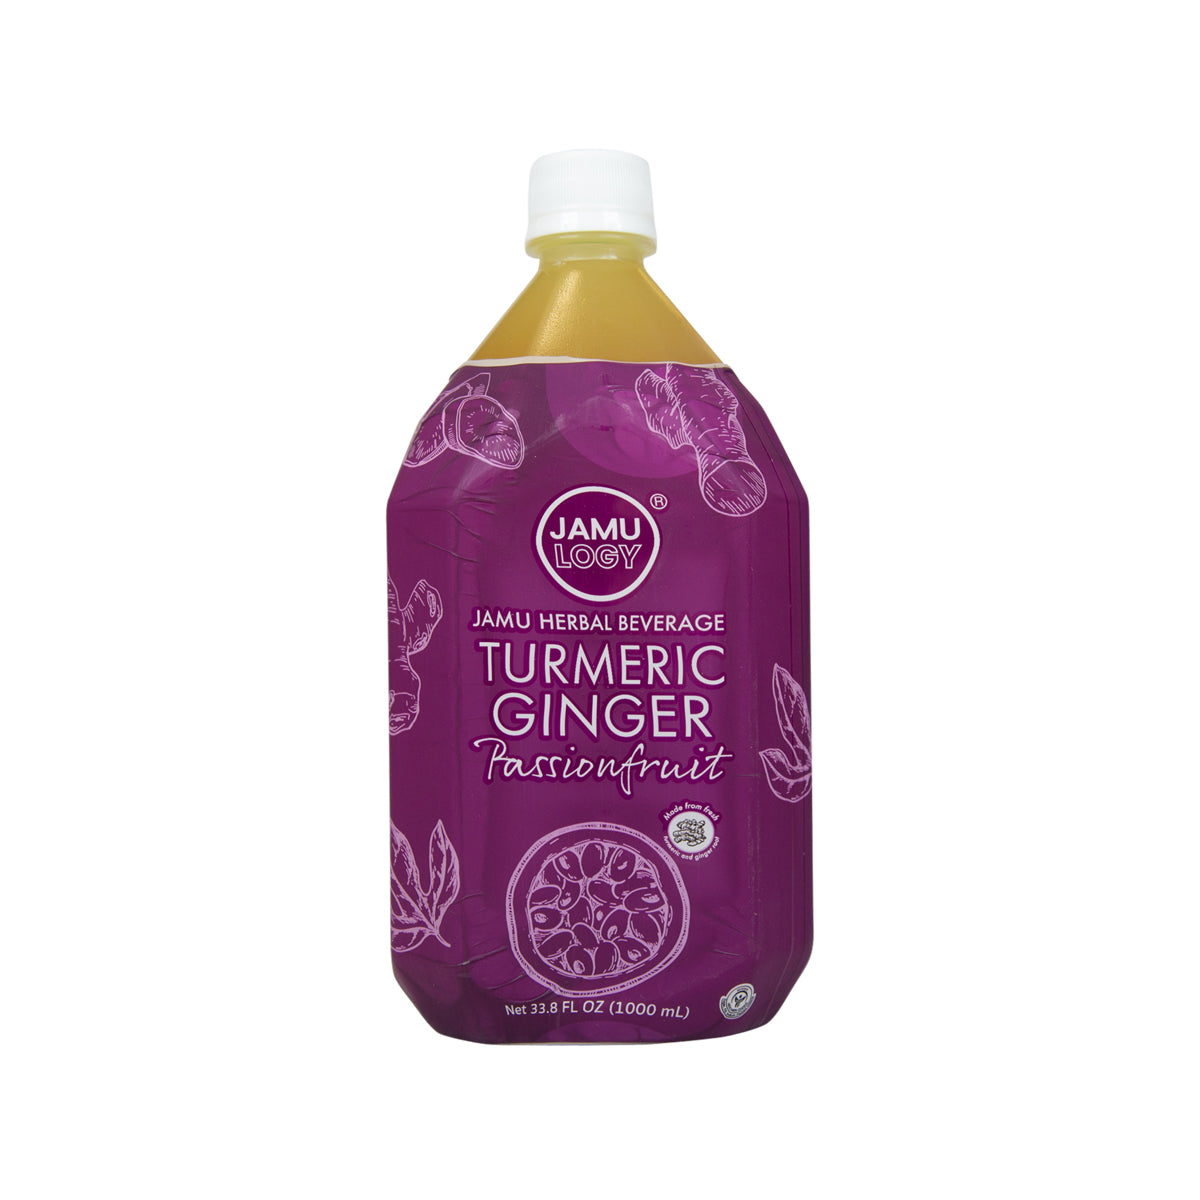 JAMULOGY Turmeric, Ginger and Passionfruit Jamu Herbal Drink  (1L)